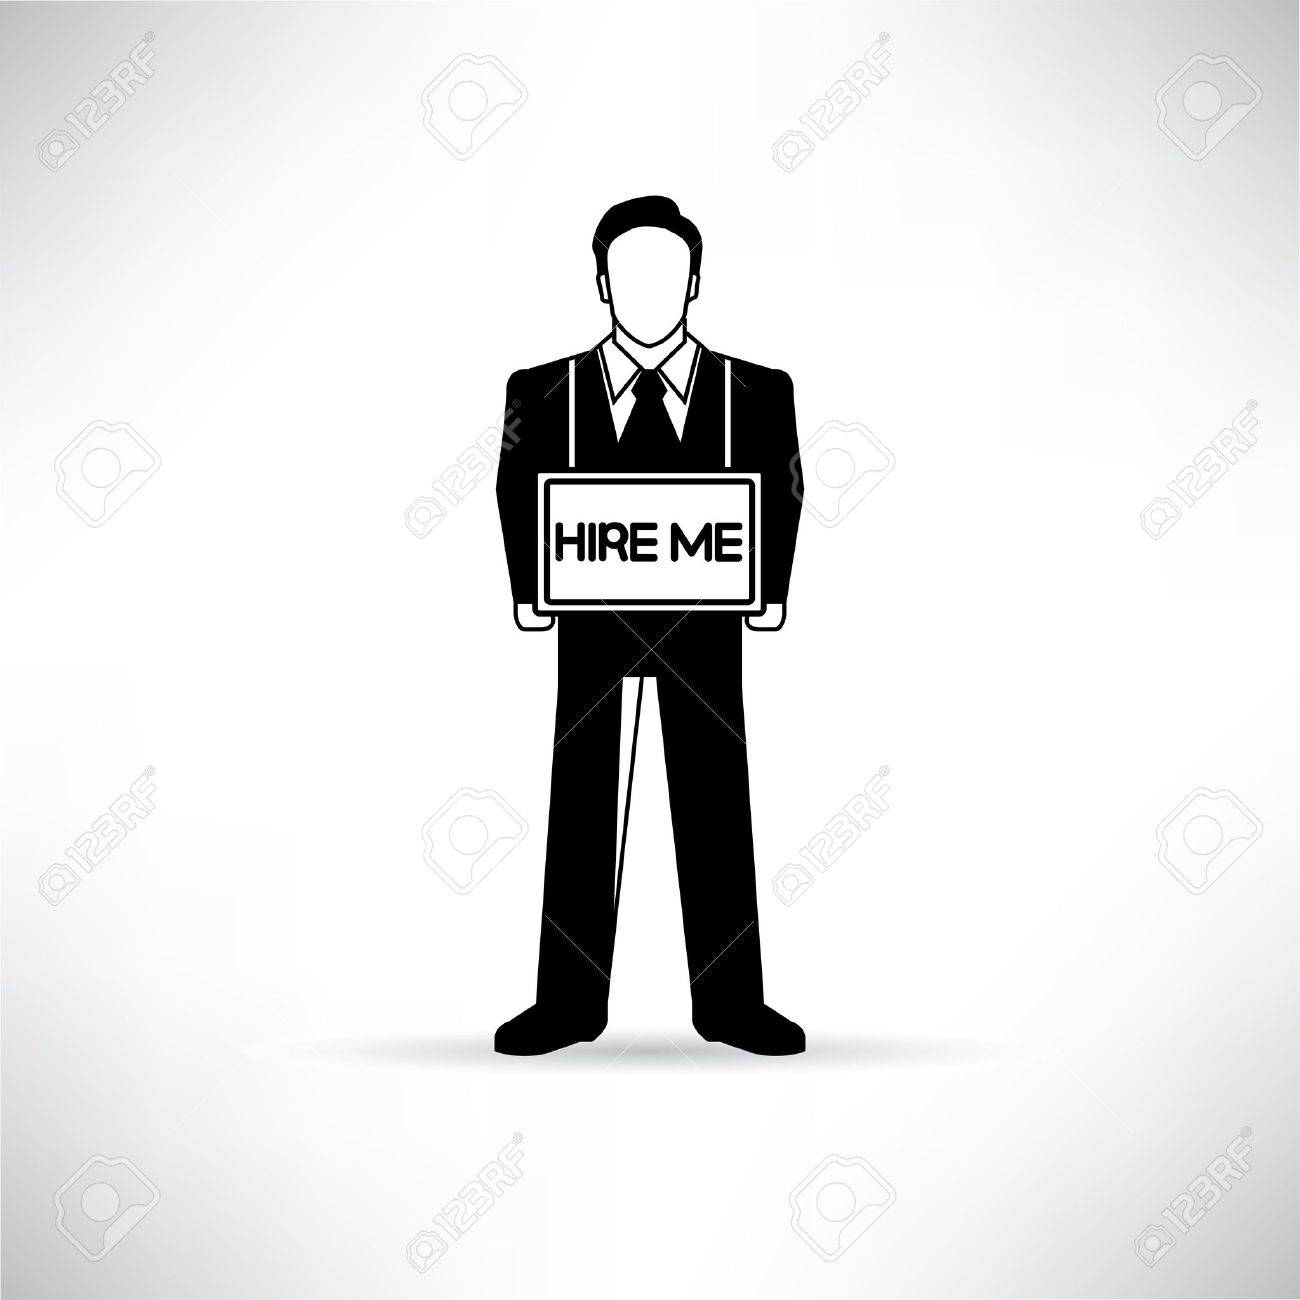 looking to hire cliparts stock vector and royalty looking to hire job seeker